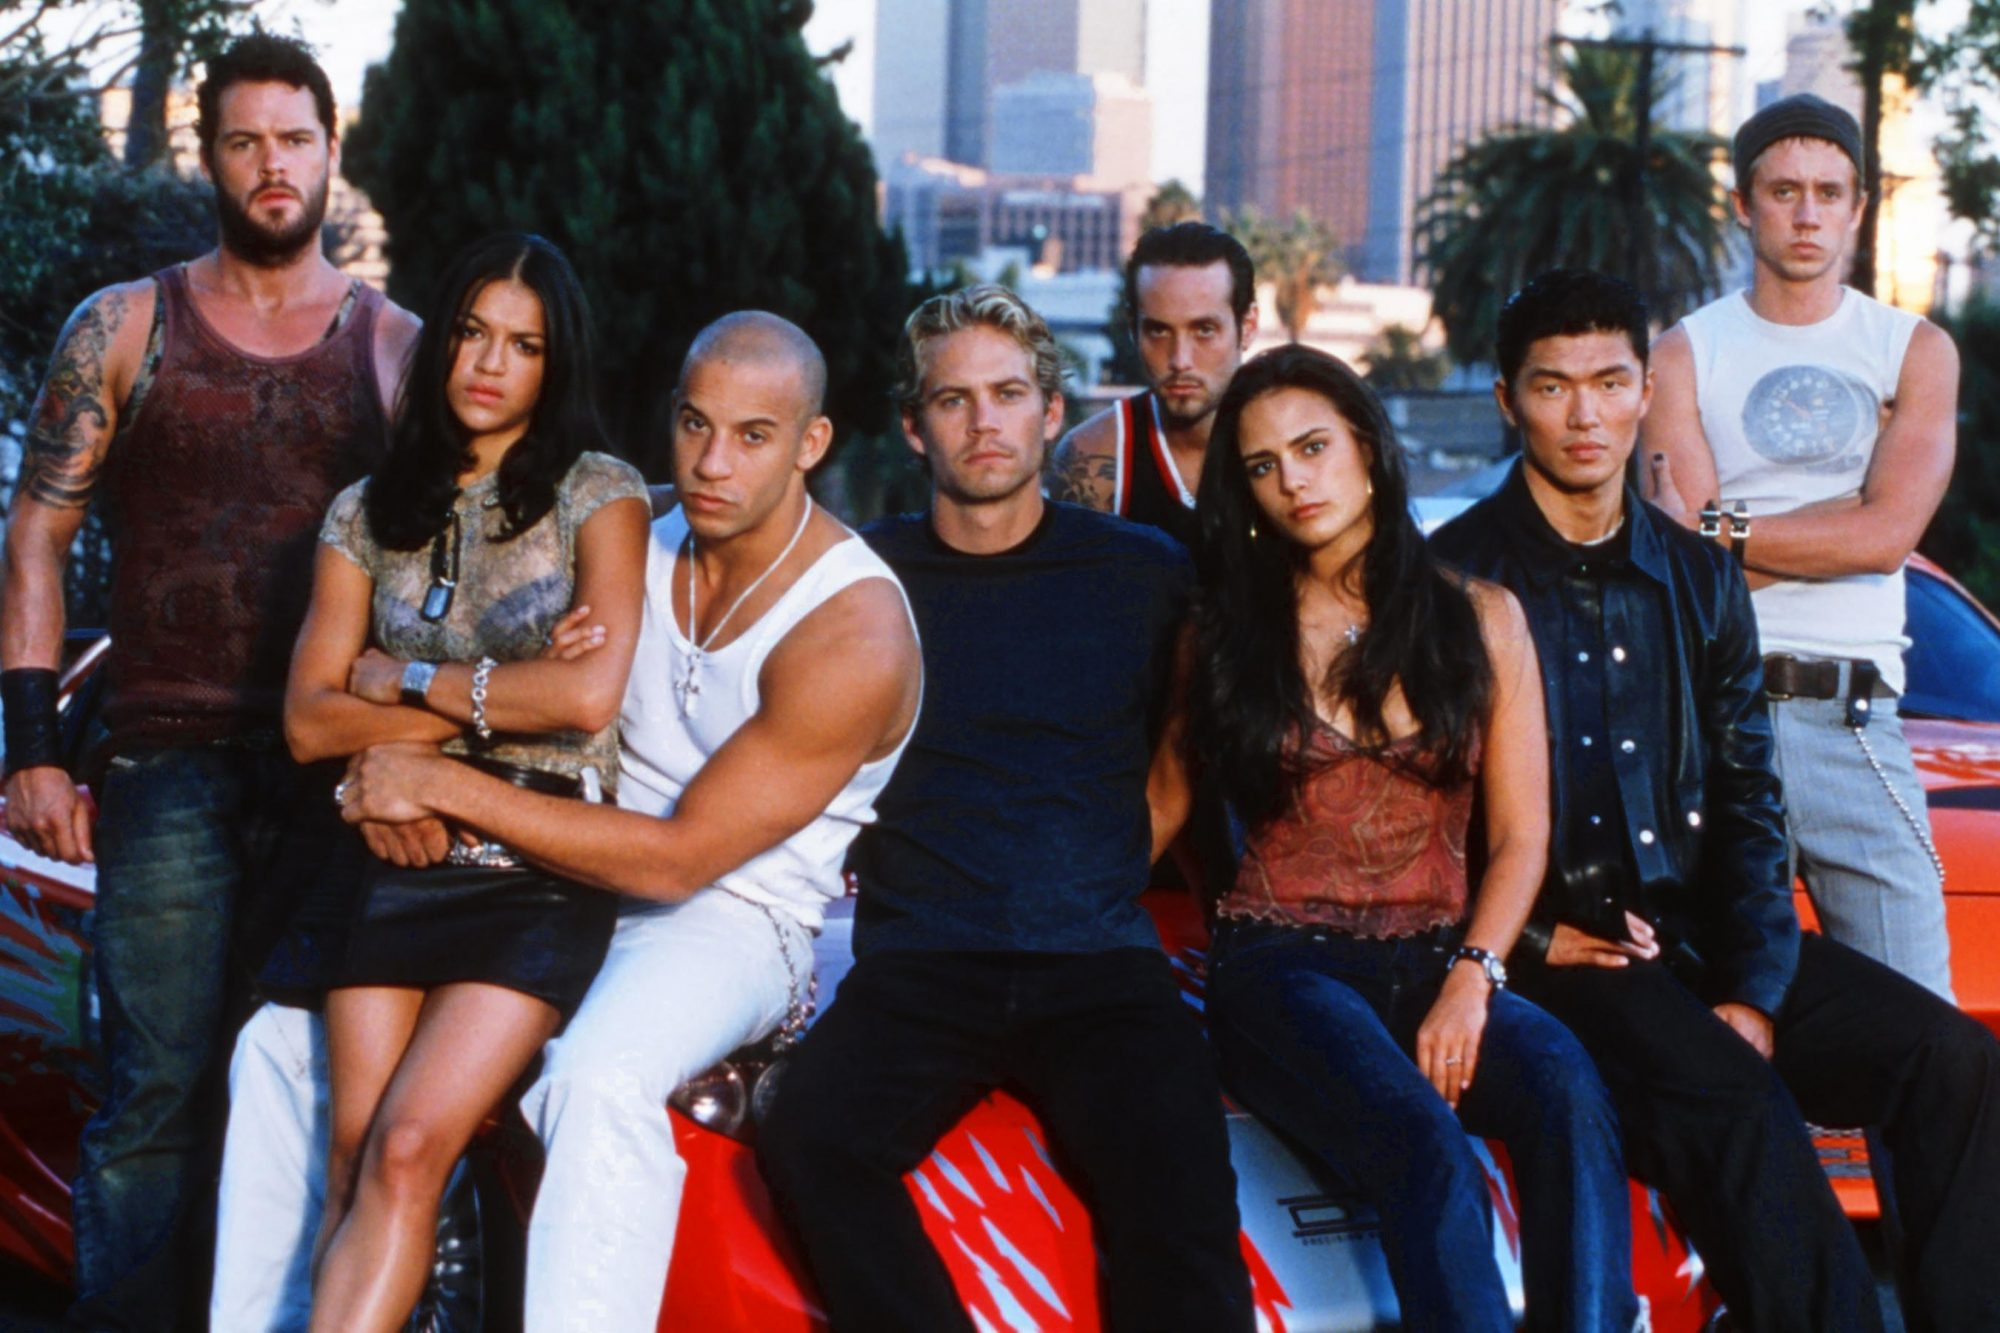 THE FAST AND THE FURIOUS, from left: Matt Schulze, Michelle Rodriguez, Vin Diesel, Paul Walker, John